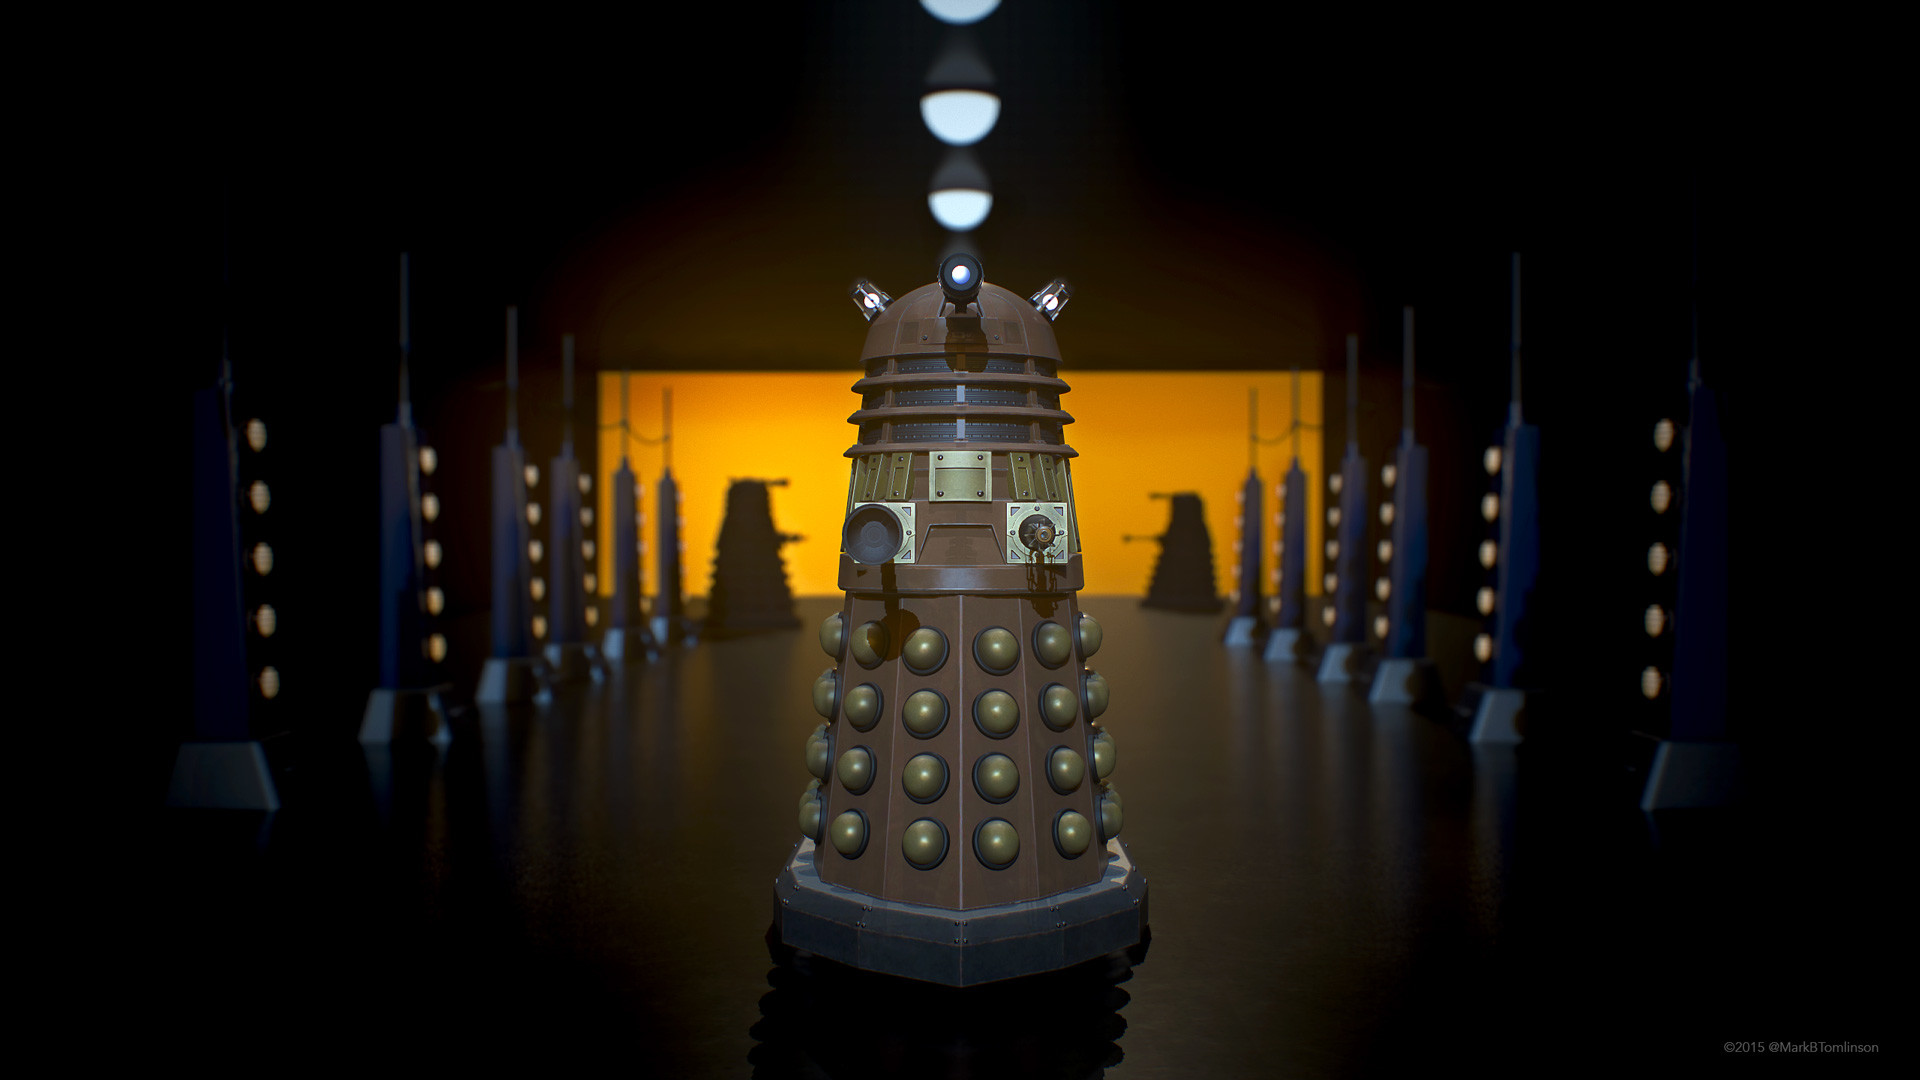 Photo Slideshow Software - DVD Slide Show, Photo to DVD Dr who dalek pictures